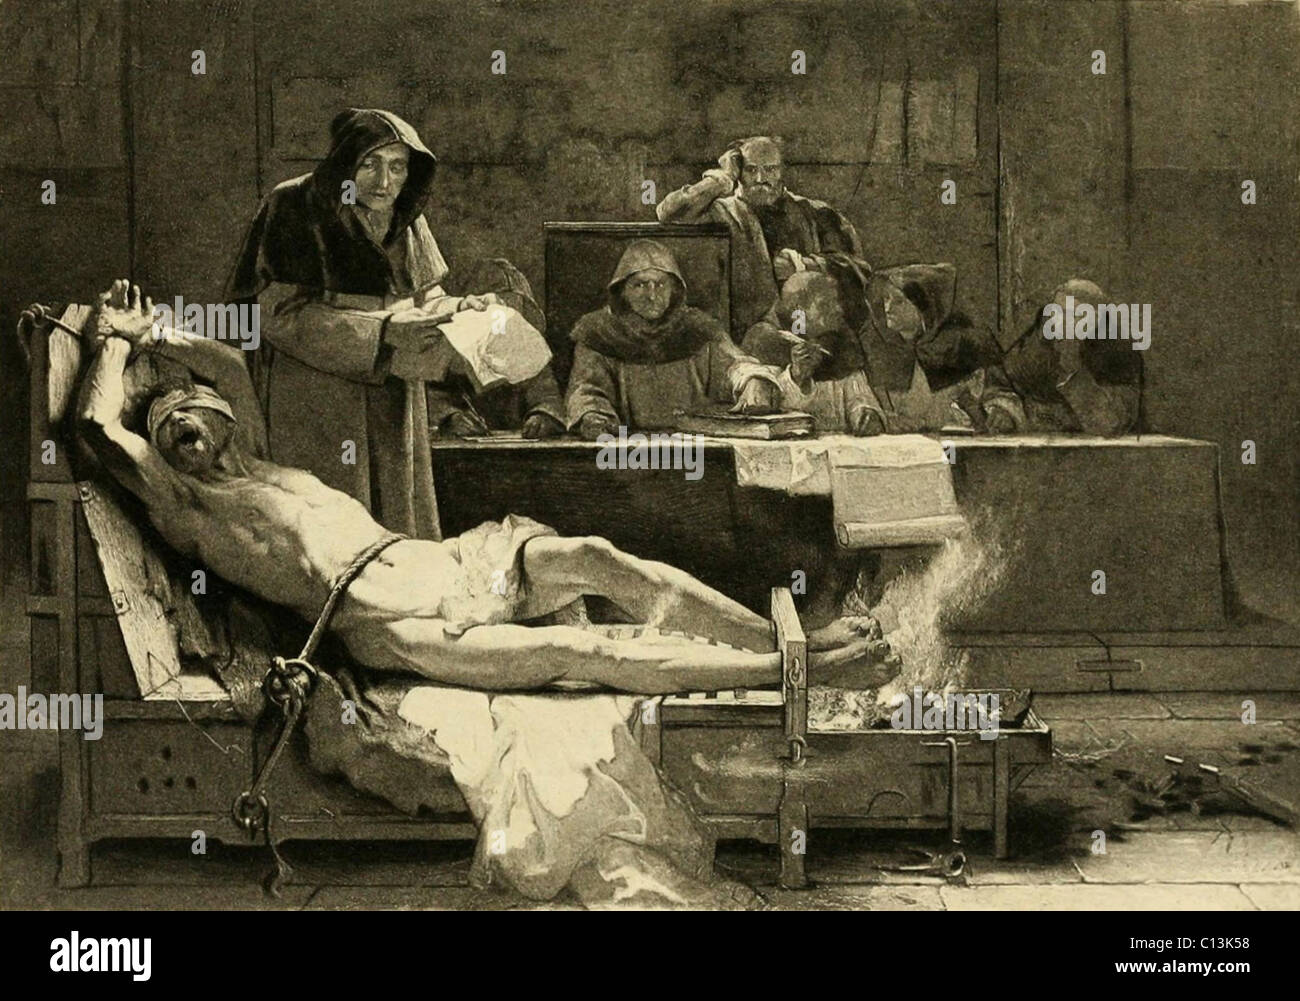 Victim of the Spanish Inquisition being tortured before a tribunal of the Spanish Inquisition. The Inquisition was - Stock Image